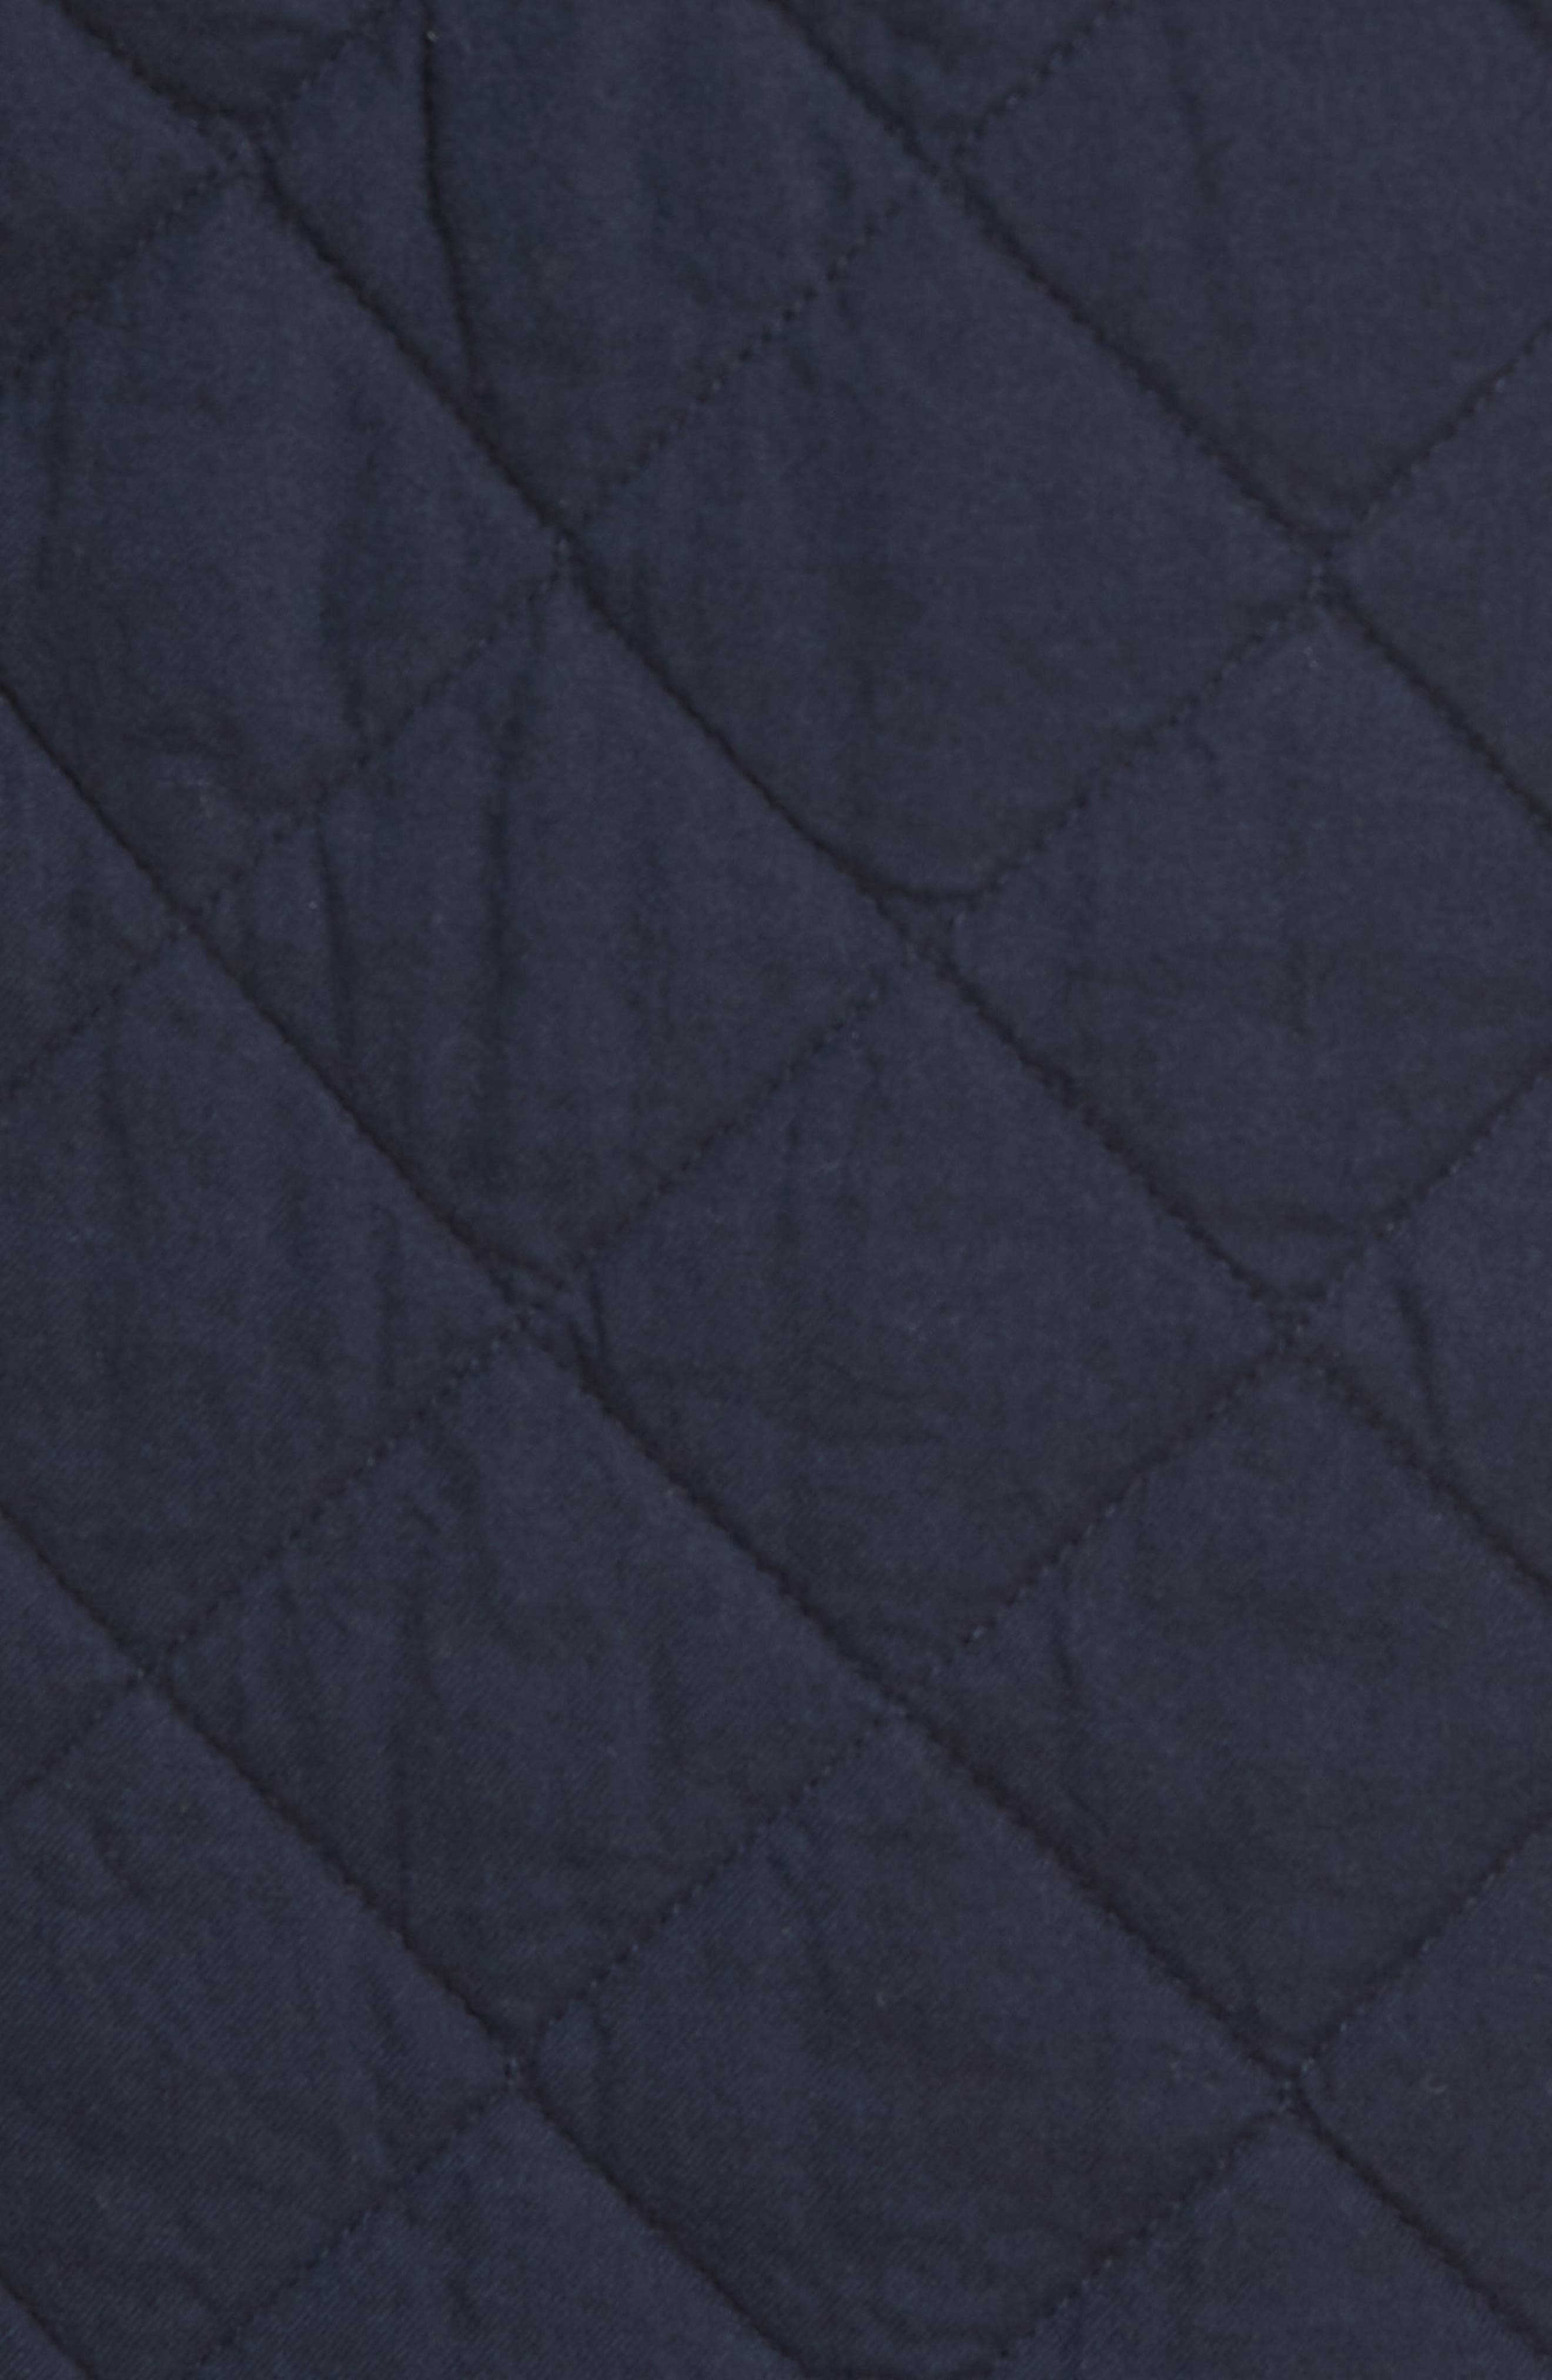 Quilted Shirt Jacket,                             Alternate thumbnail 5, color,                             Navy